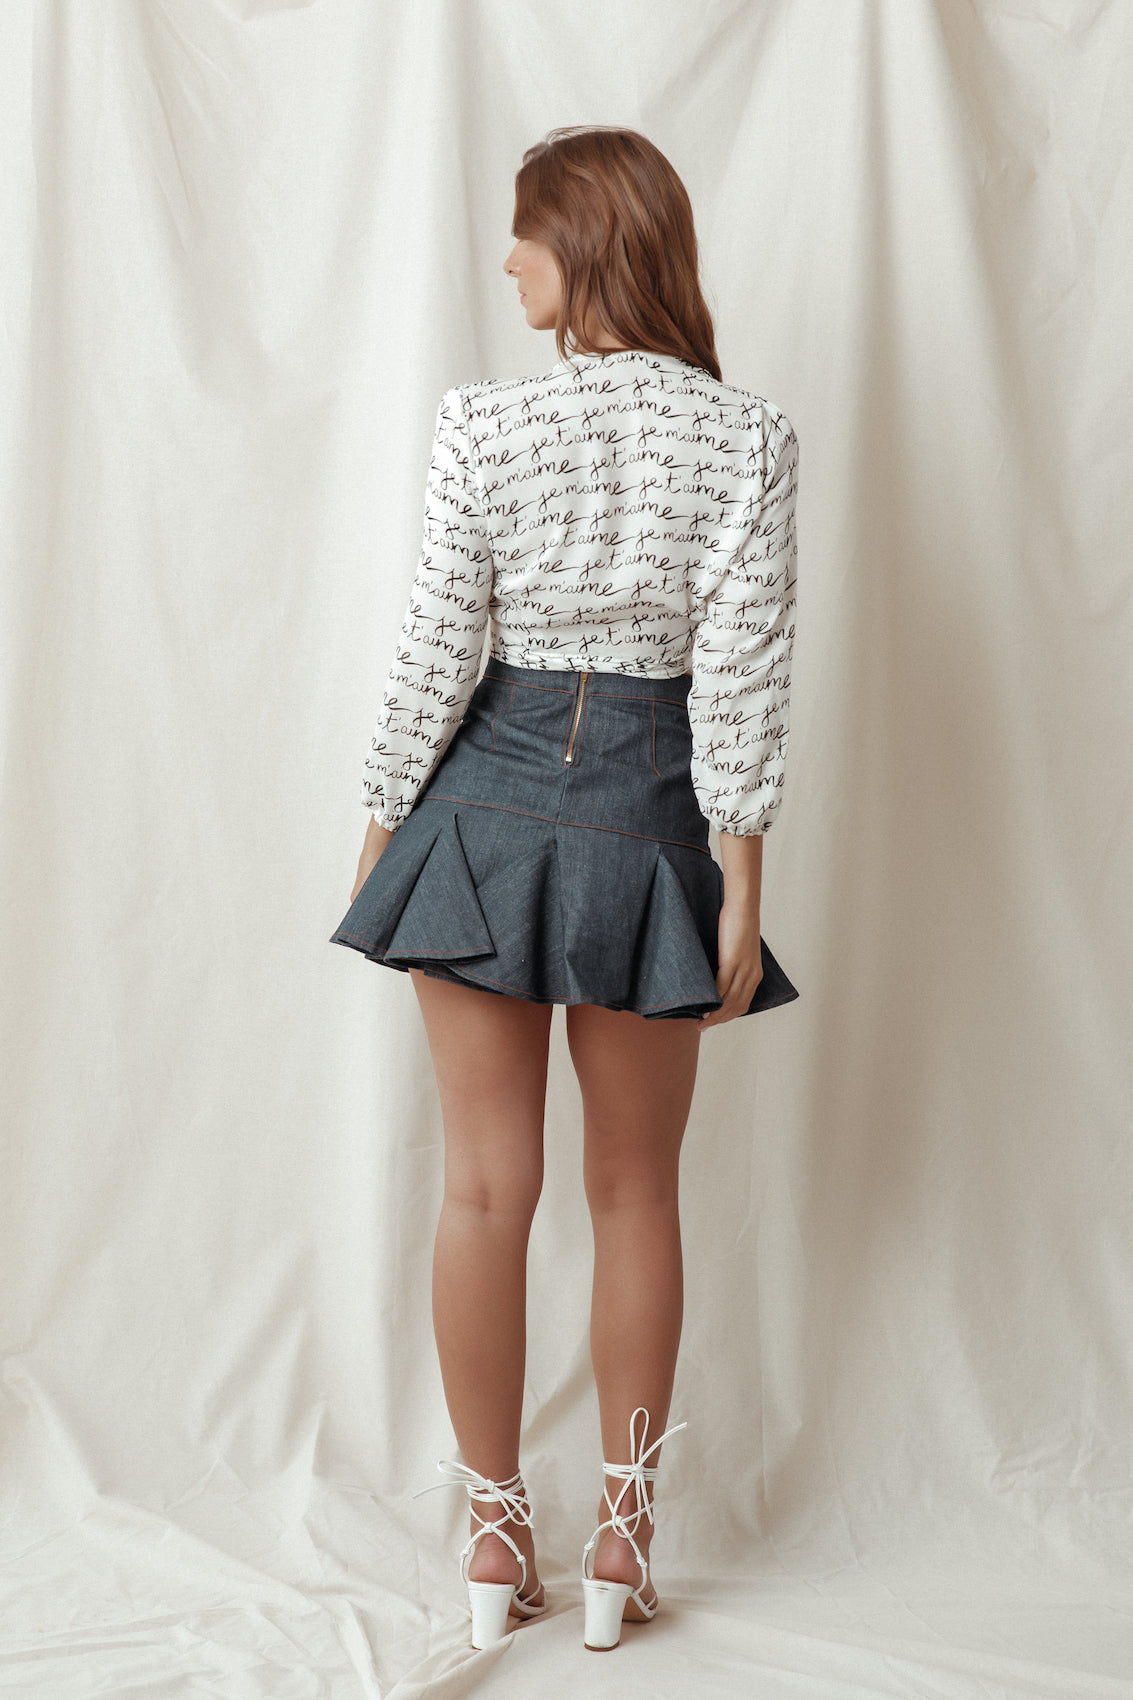 JE T'AIME SILK BLOUSE (LIMITED) - Lurelly